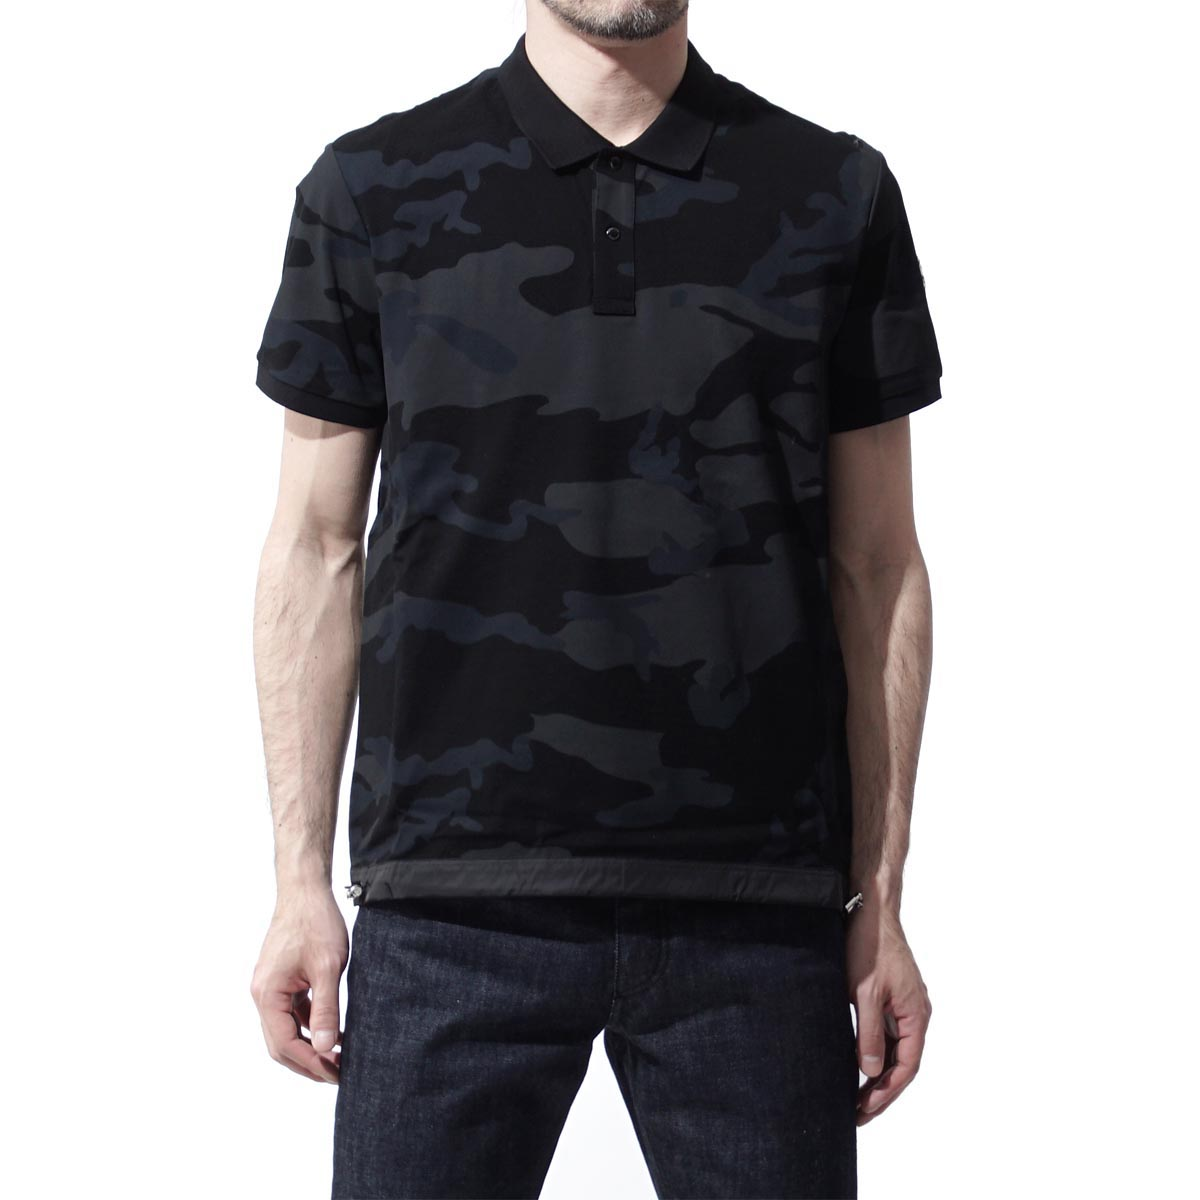 Monk rail MONCLER polo shirt men tops cut-and-sew short sleeves cotton